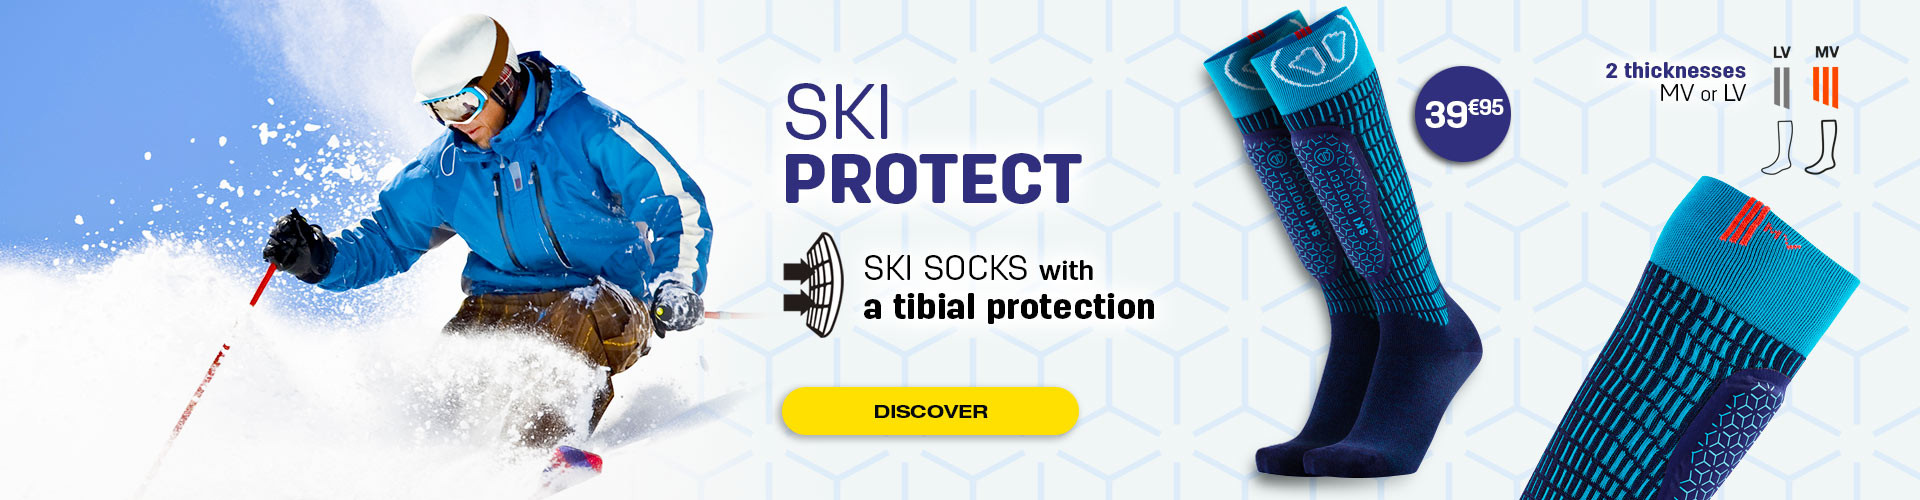 No more shin pains during ski sessions with our Ski Protect socks